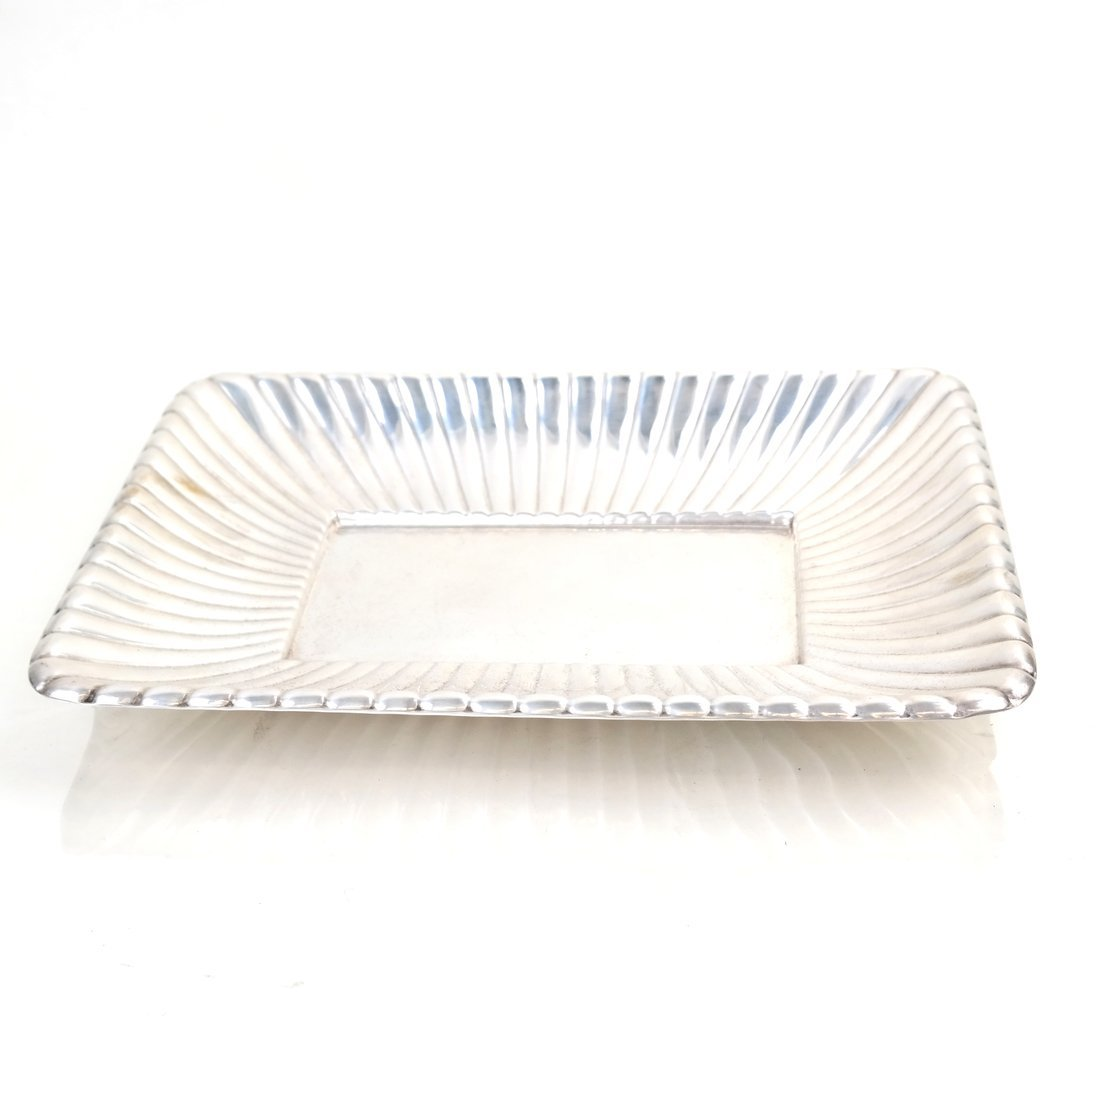 Reed & Barton Sterling Serving Dish - 2